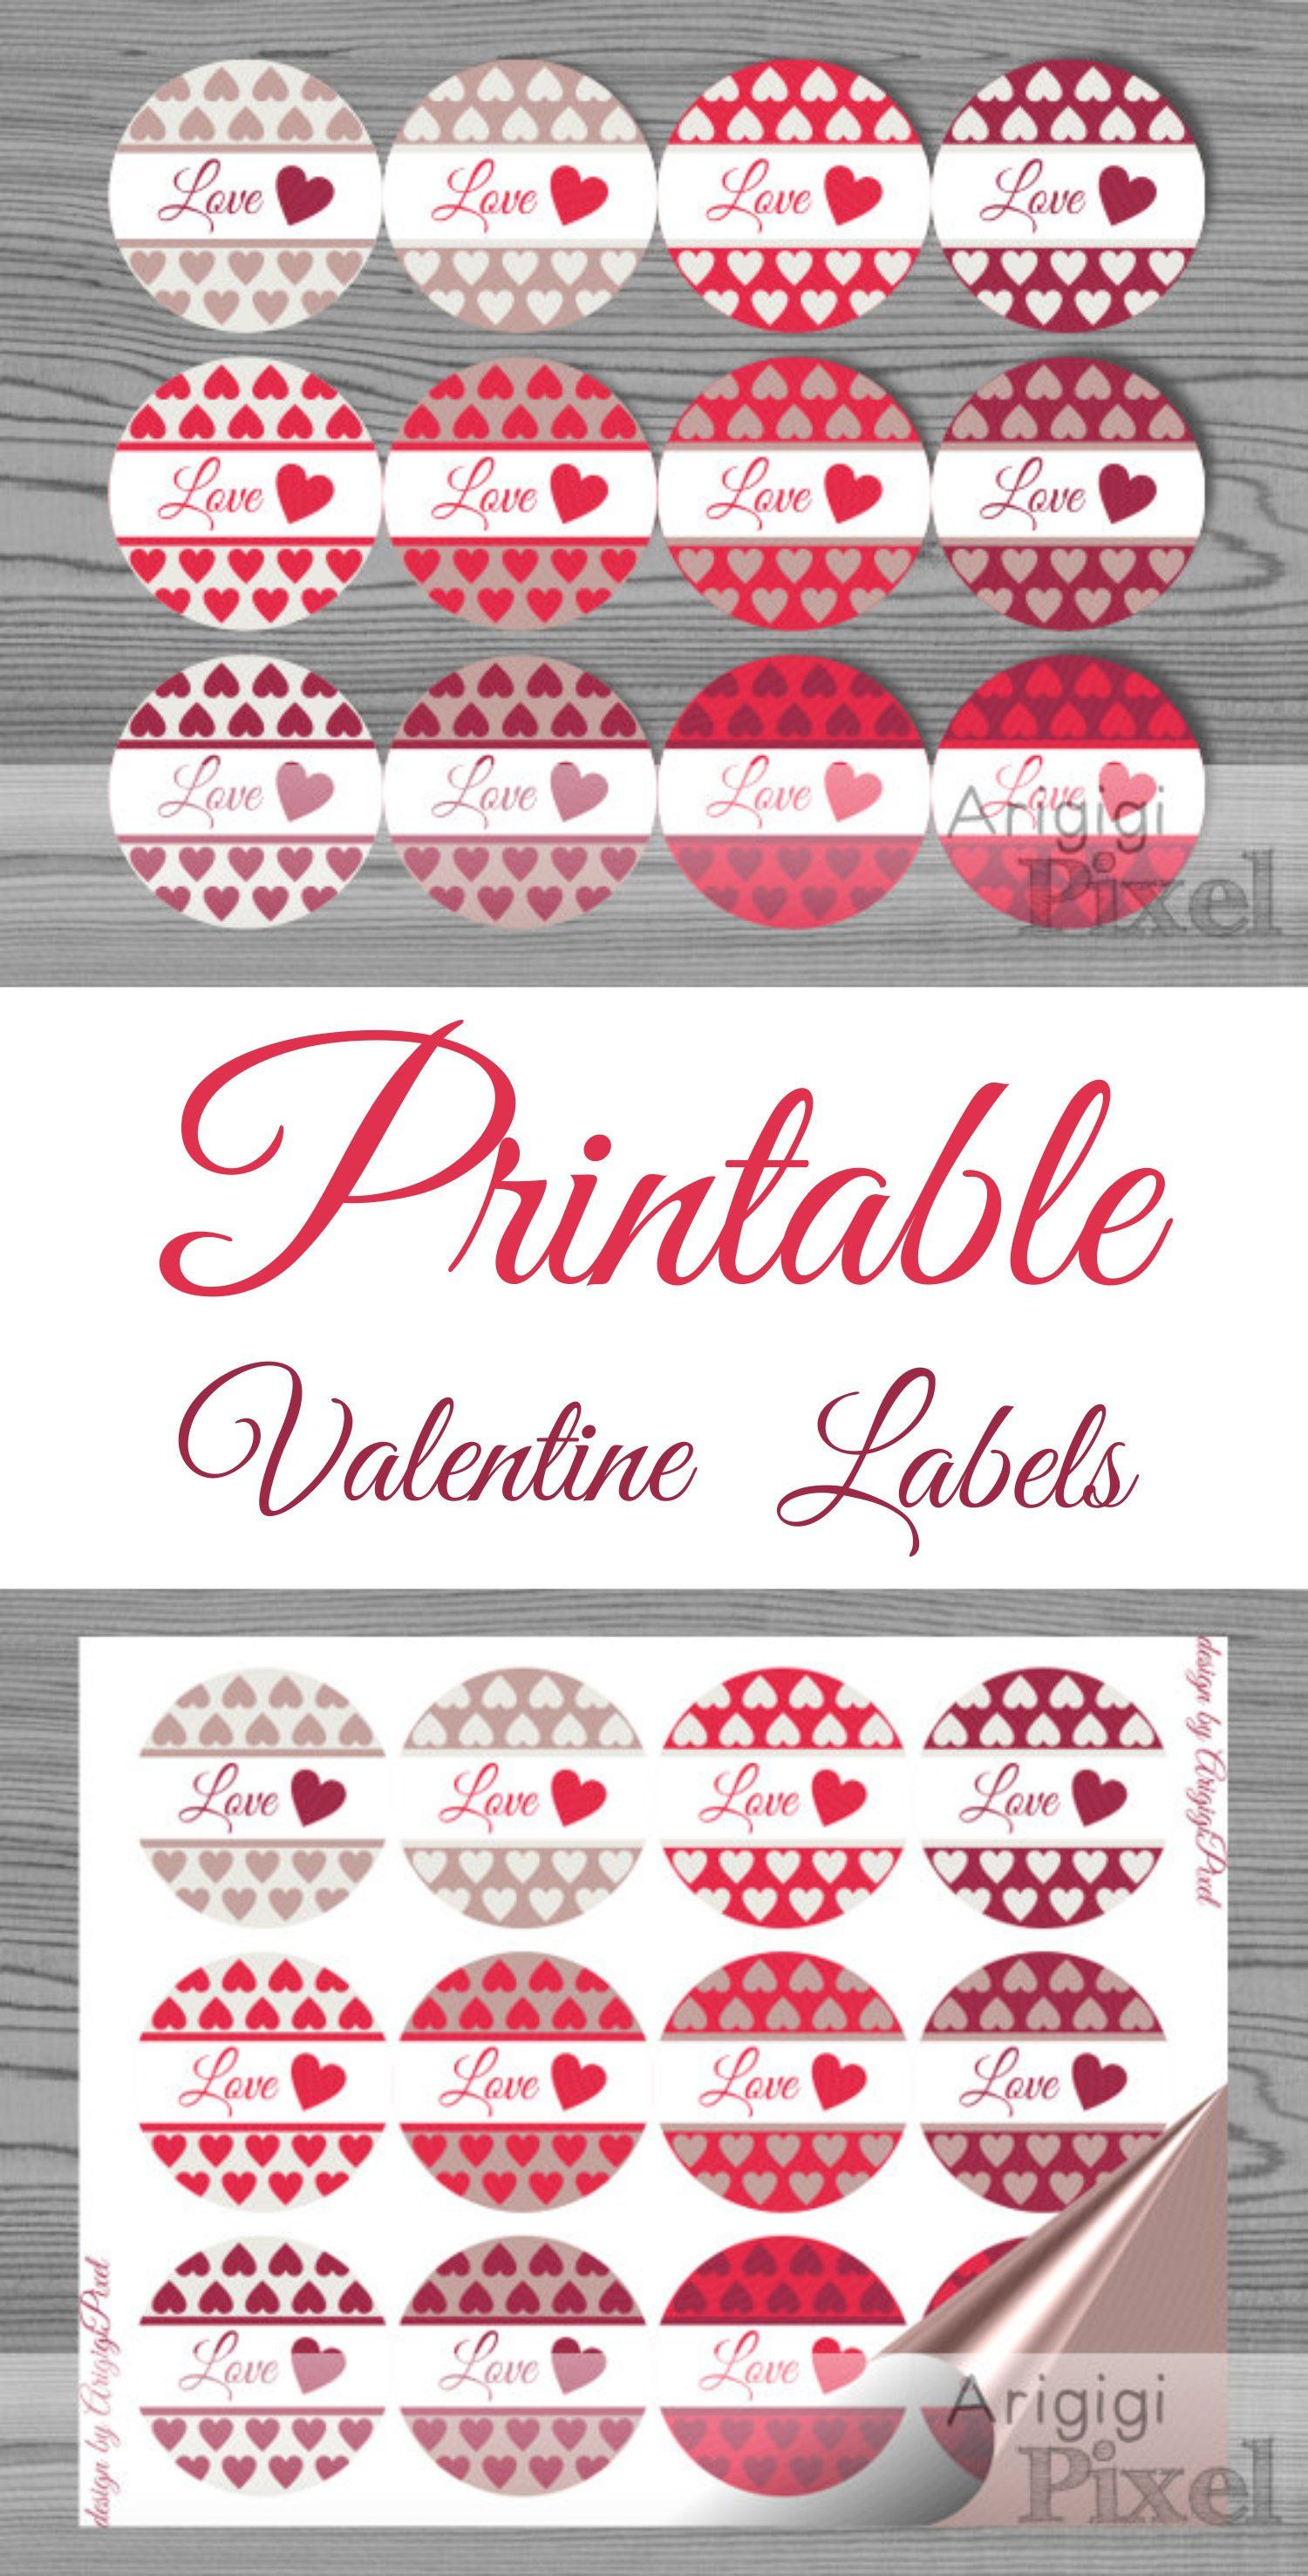 Printable Valentines Day Label Template Love Round Stickers Etsy Valentines Gift Tags Red Heart Stickers Valentines Printables